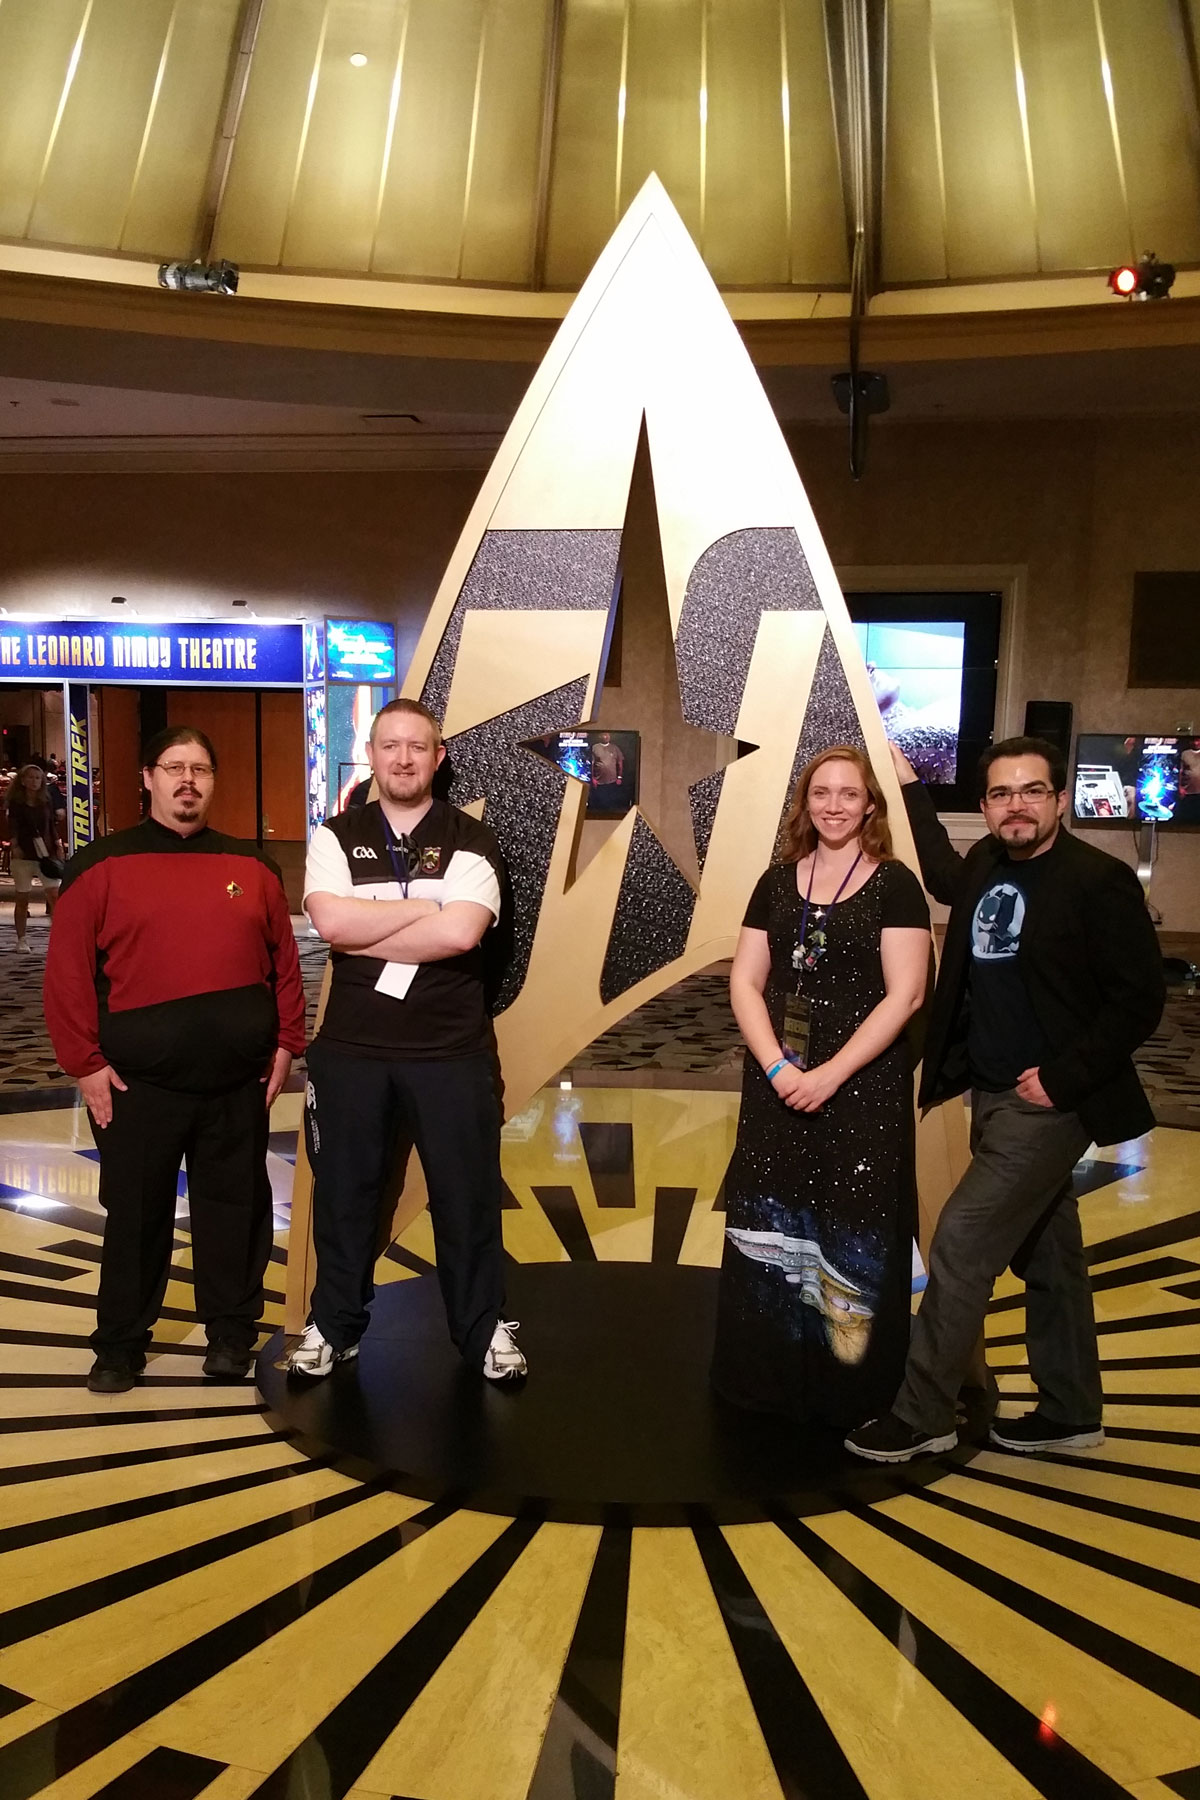 Left to Right: Henry, Winters, Kenna, and Elijah in front of a large 50th Anniversay Star Trek Statue